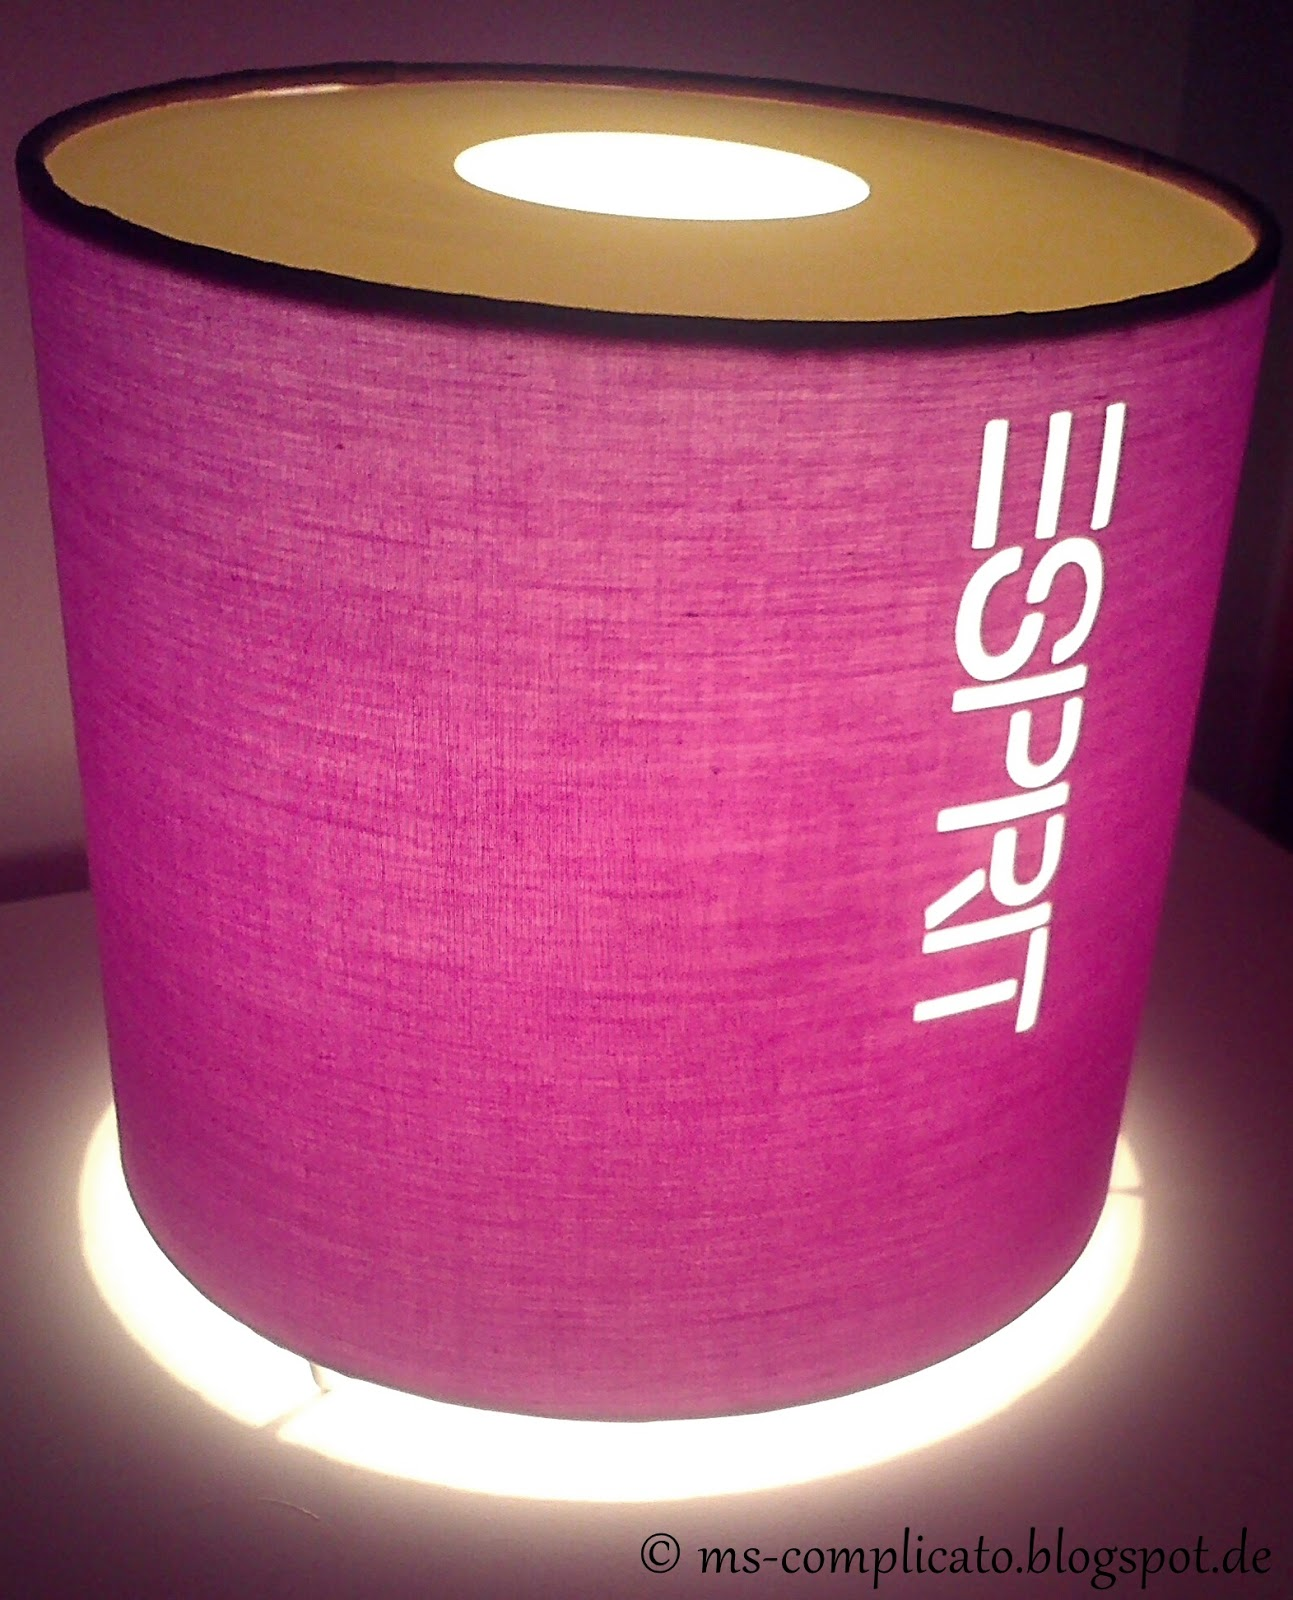 Outlet Wohndesign: { MiSS COMPLiCATO }: Lampe Vom Kasper Wohndesign Outlet